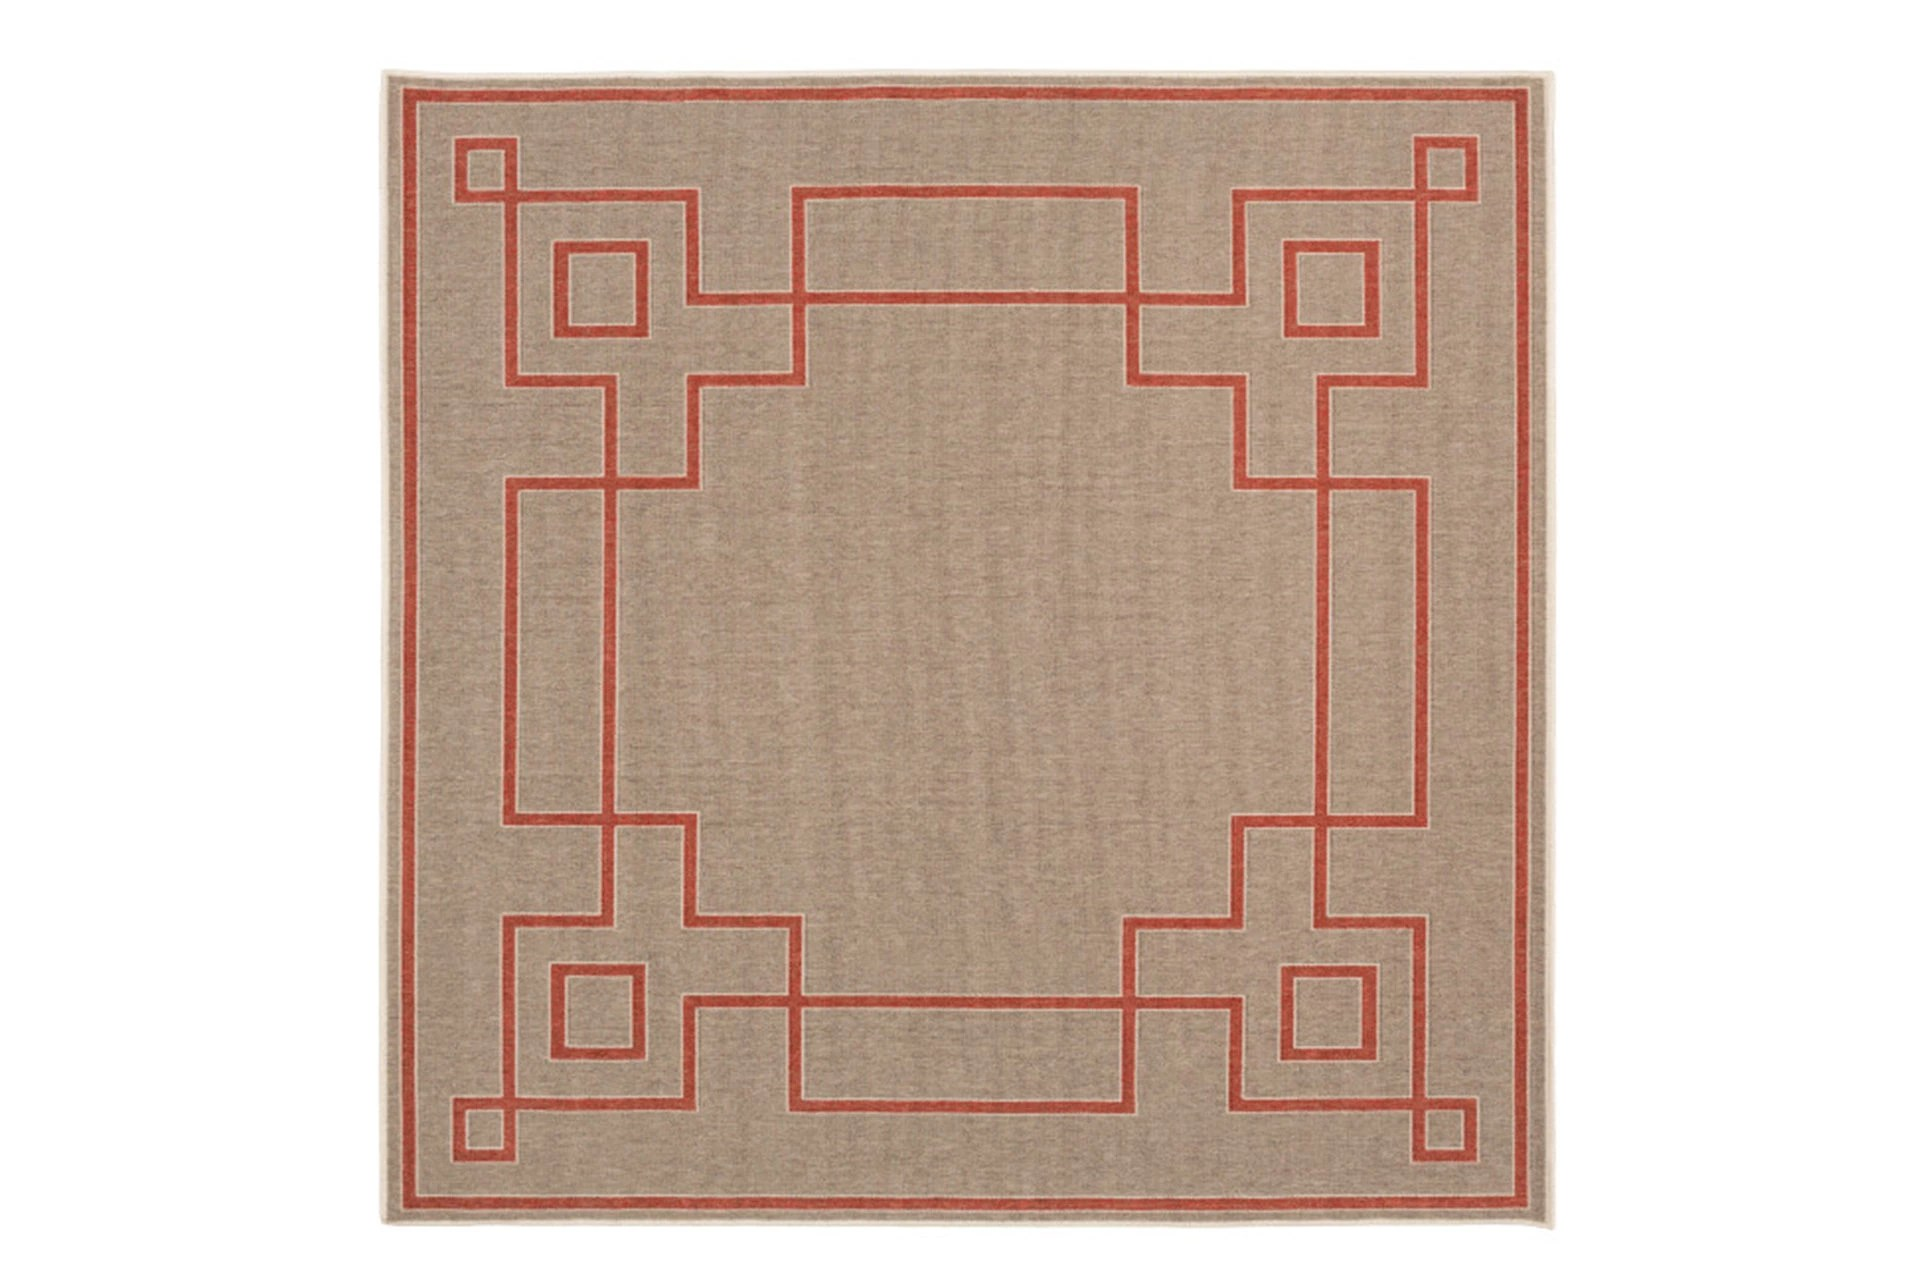 87x87 Square Outdoor Rug Greek Key Border Natural Poppy Living Spaces